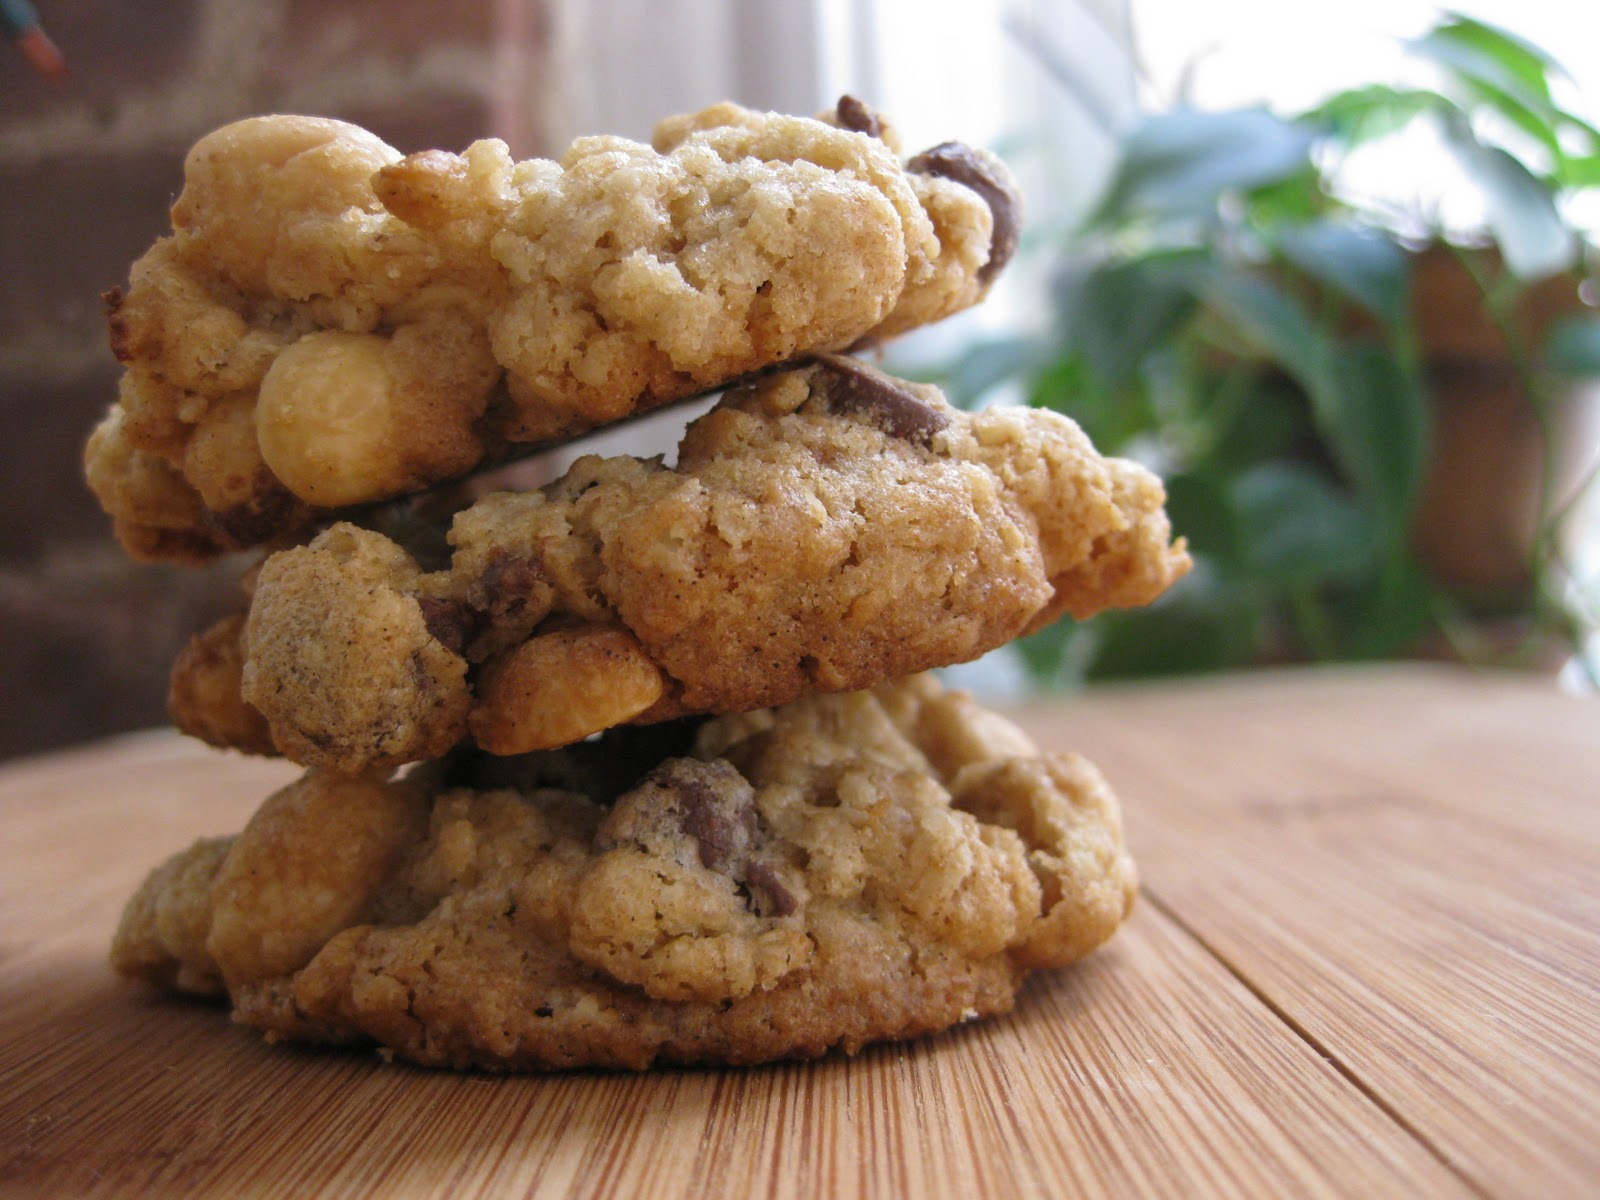 Sunday Treats: Peanut Butter Chocolate Chip Oatmeal Cookies